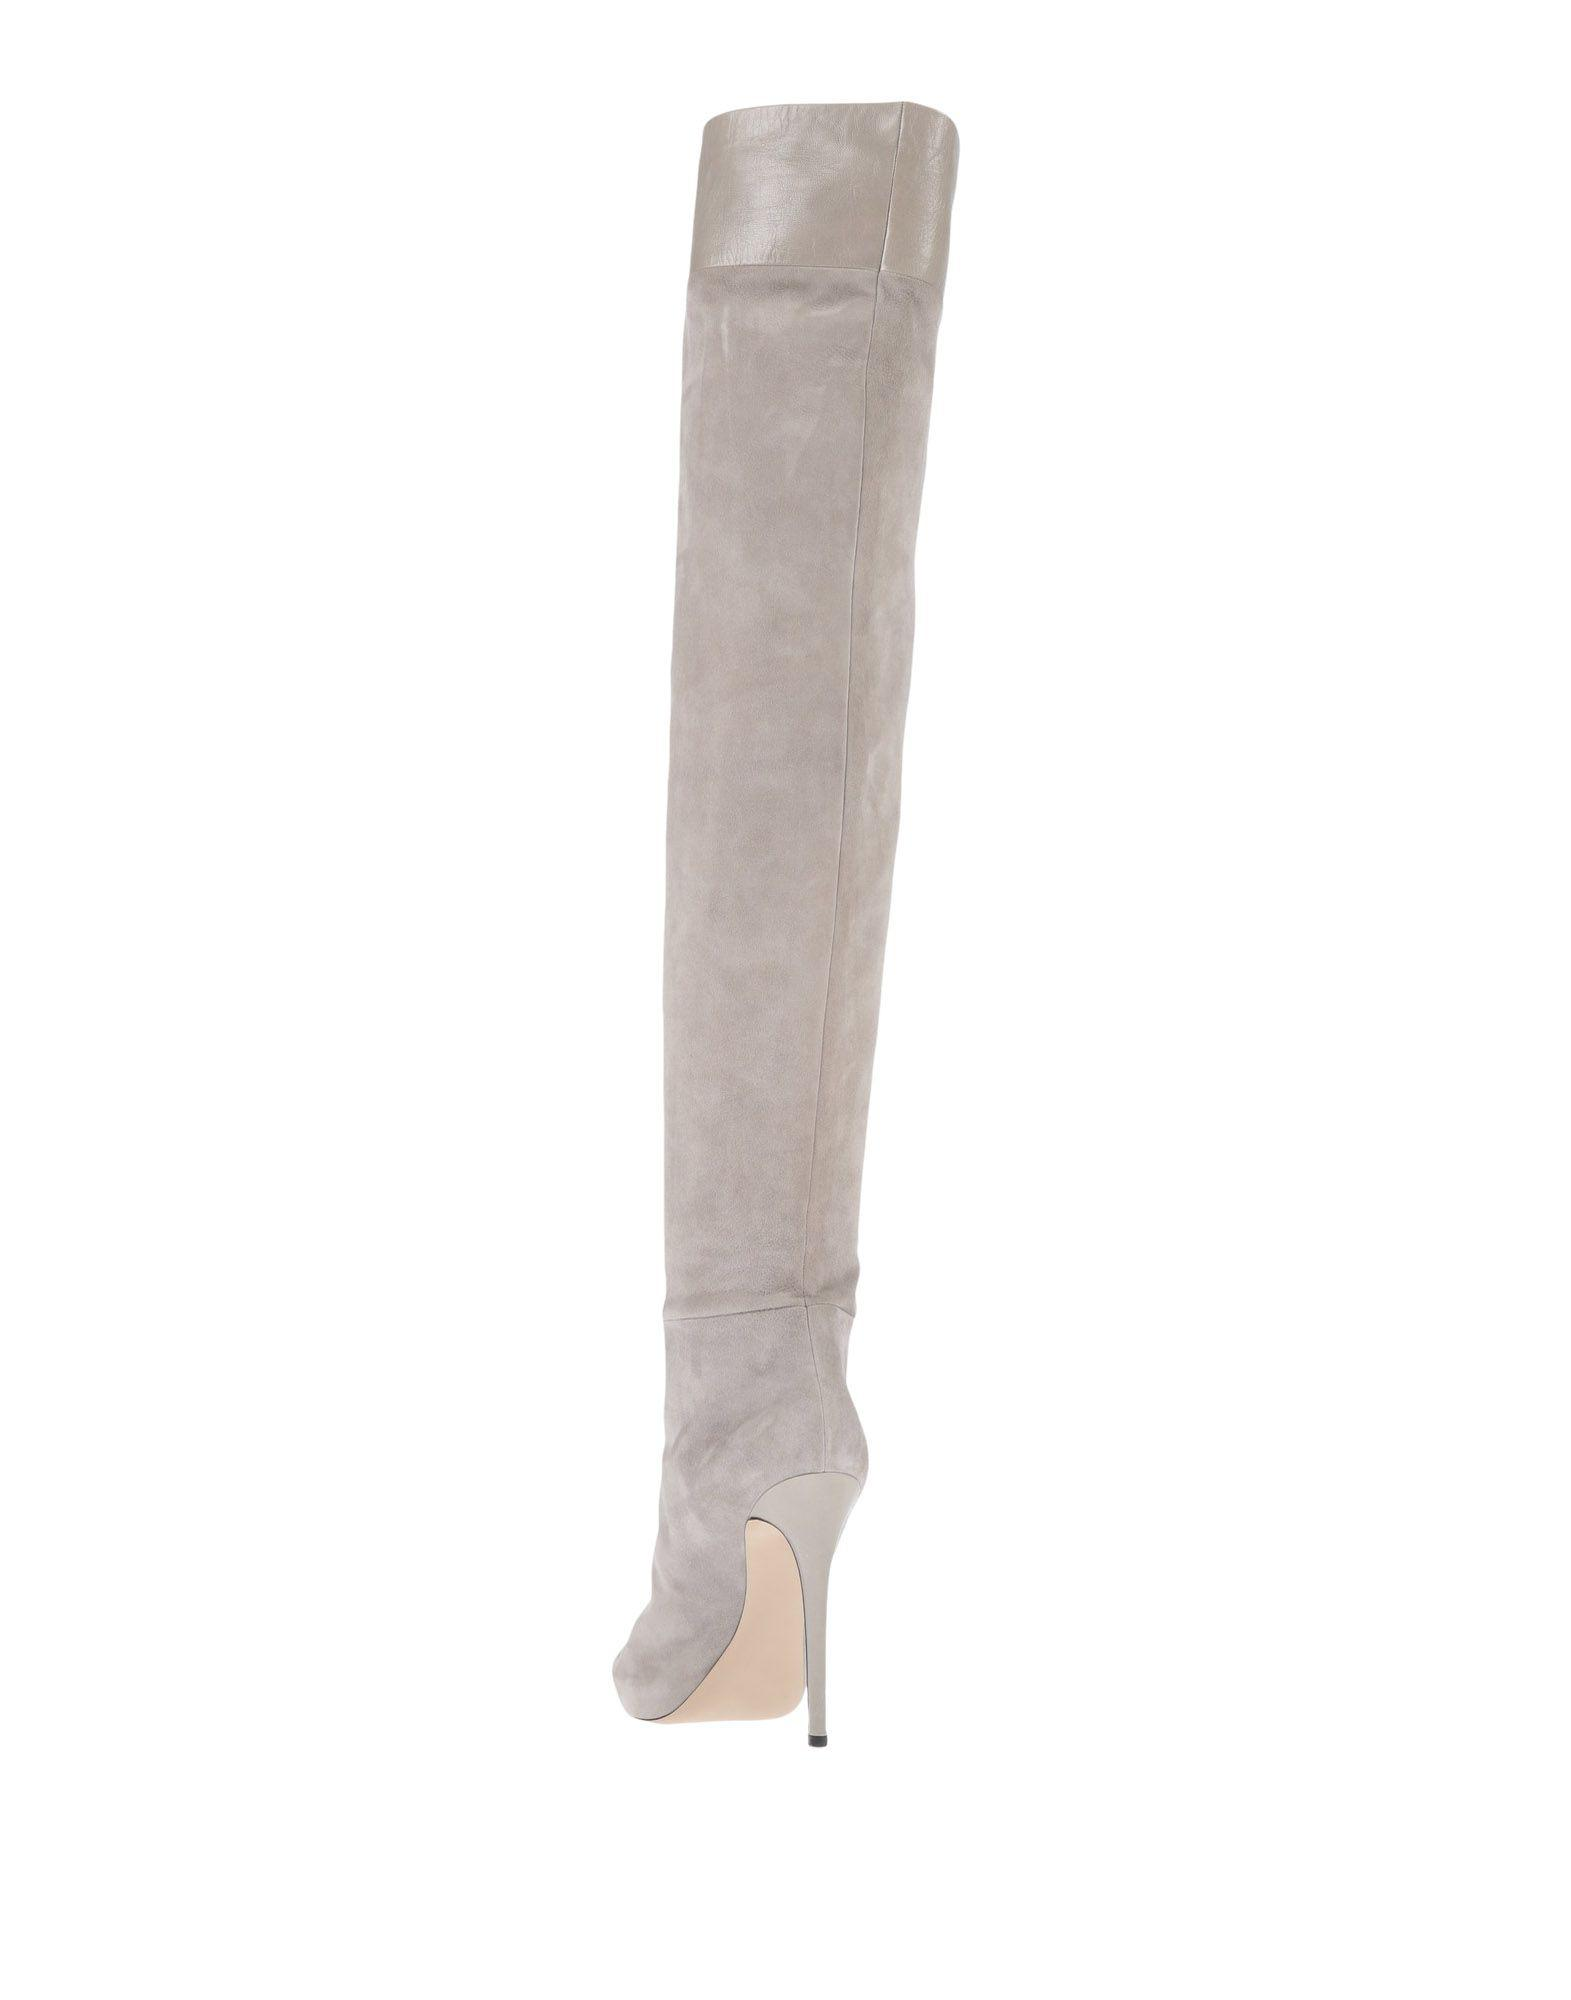 Diego Dolcini Leather Boots in Light Grey (Grey)